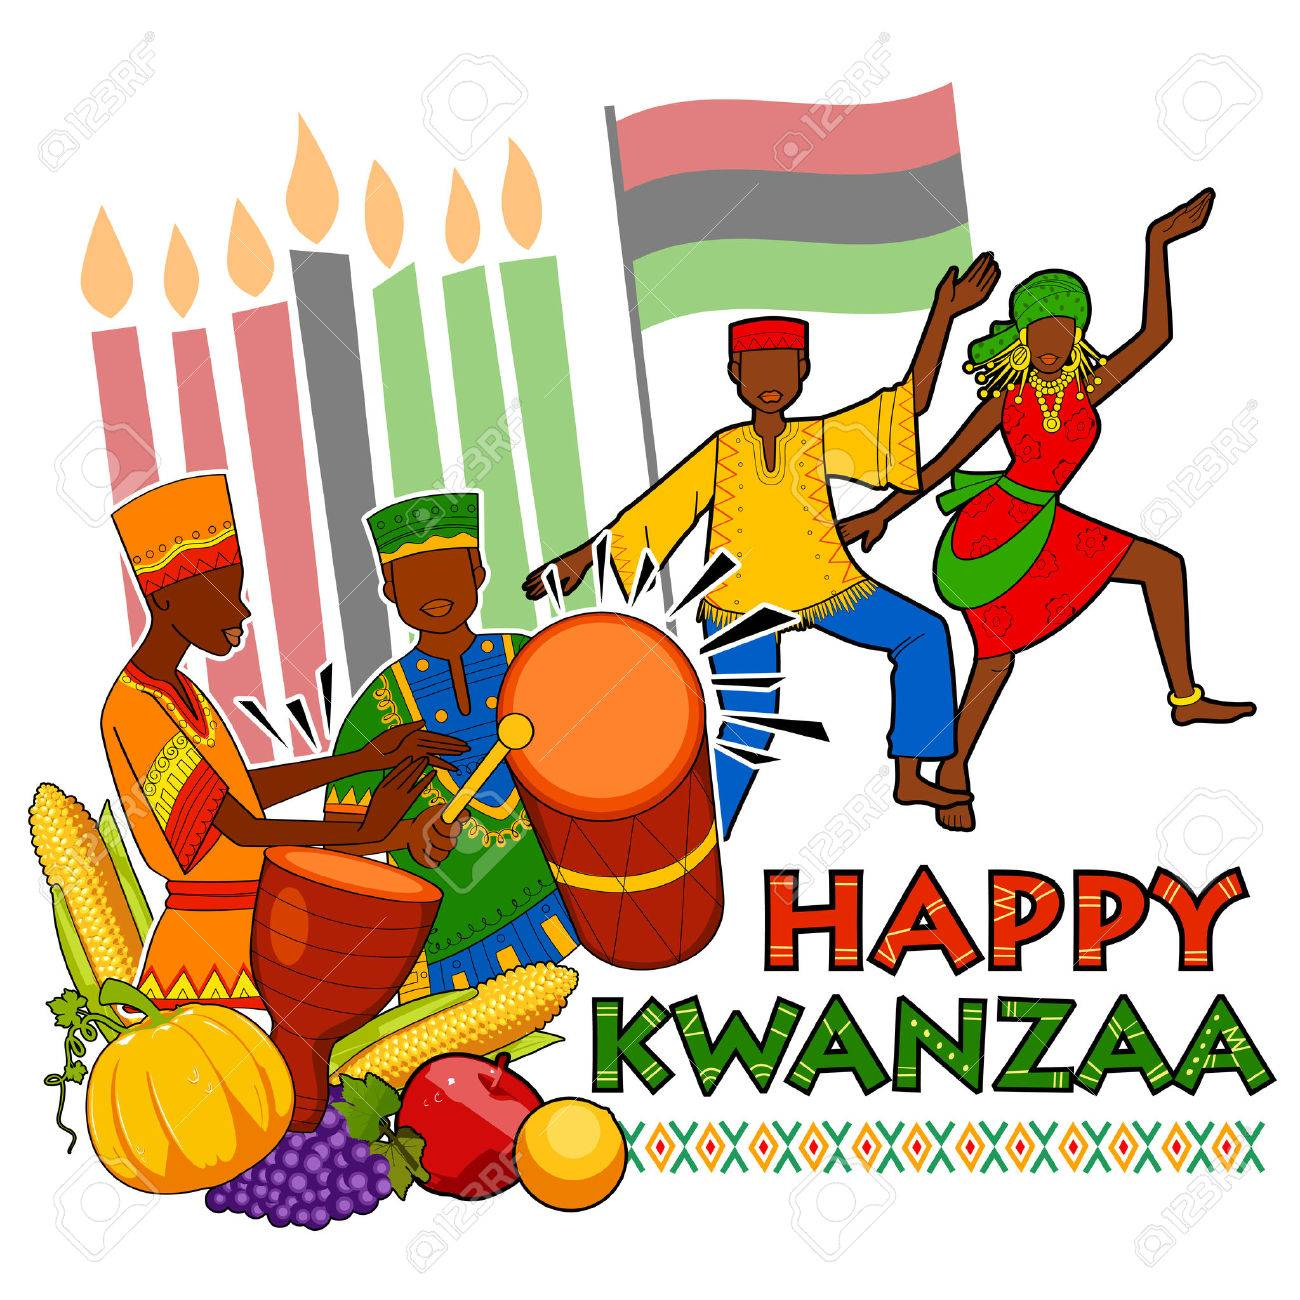 Illustration of happy kwanzaa greetings for celebration of african illustration of happy kwanzaa greetings for celebration of african american holiday festival of harvest stock vector kristyandbryce Images